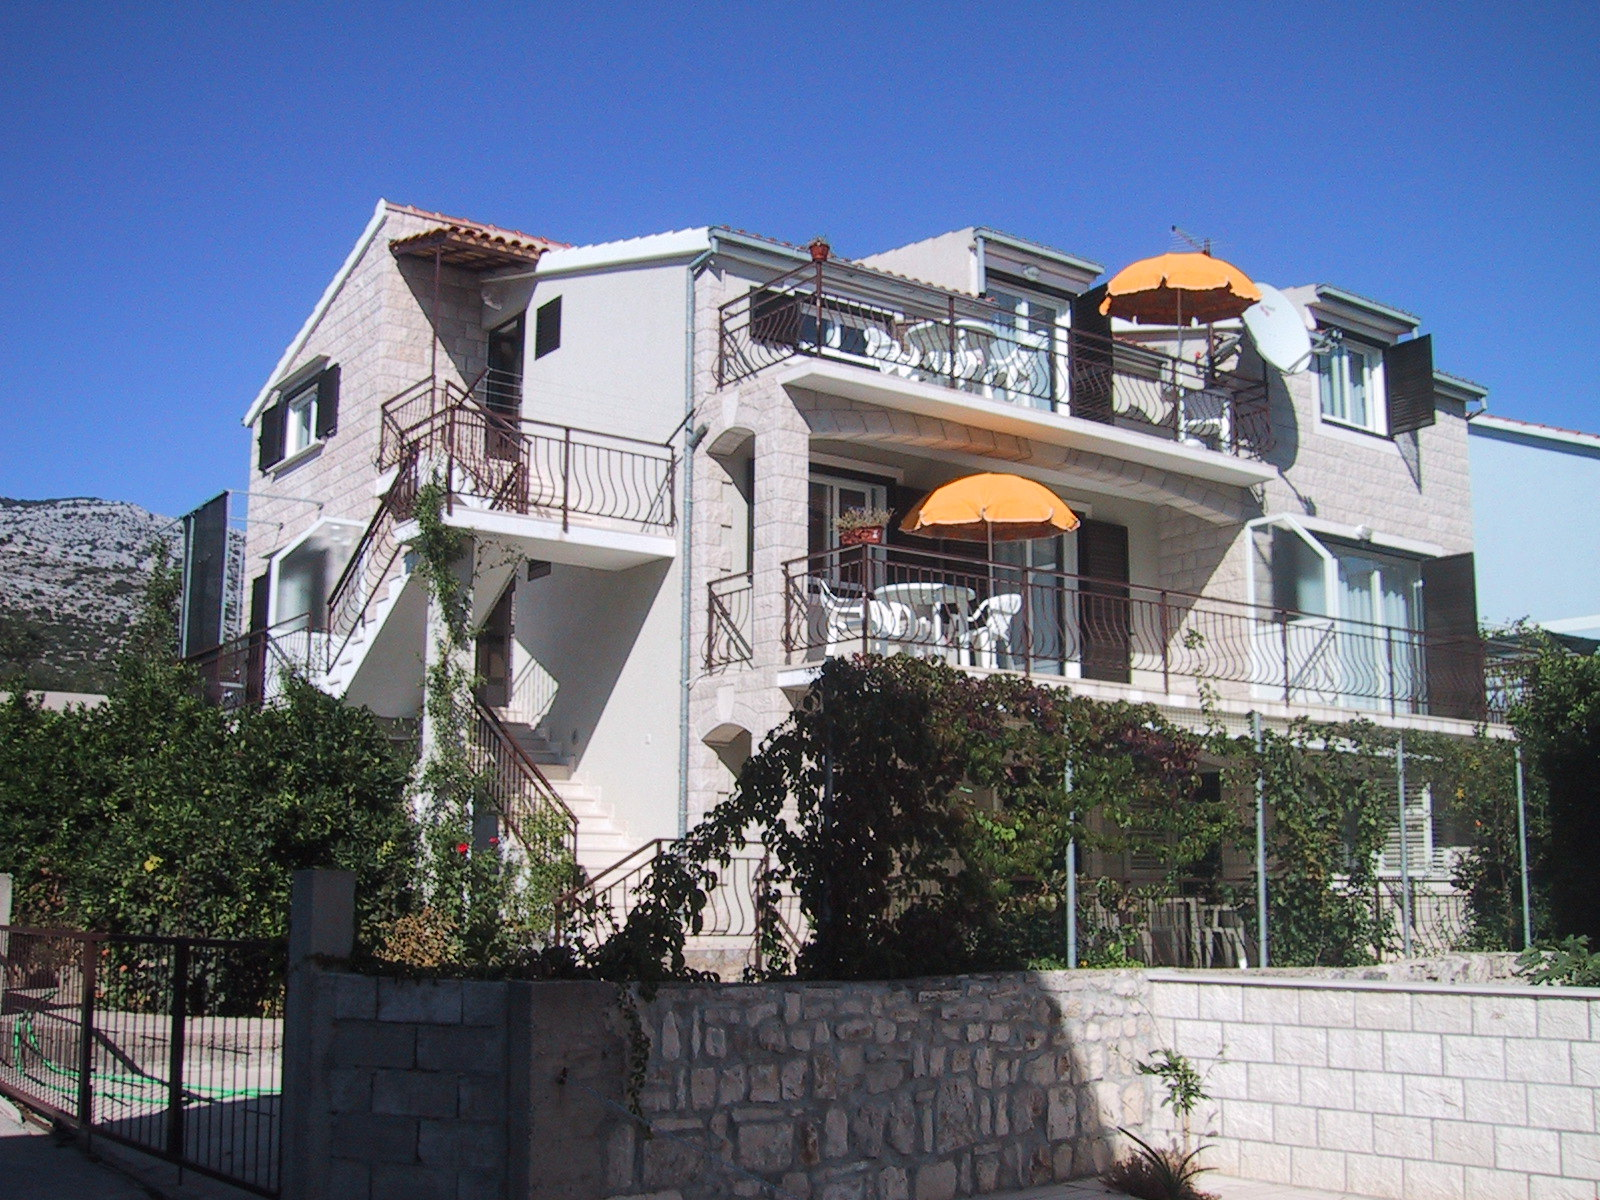 01917OREB - Orebic - Apartments Croatia